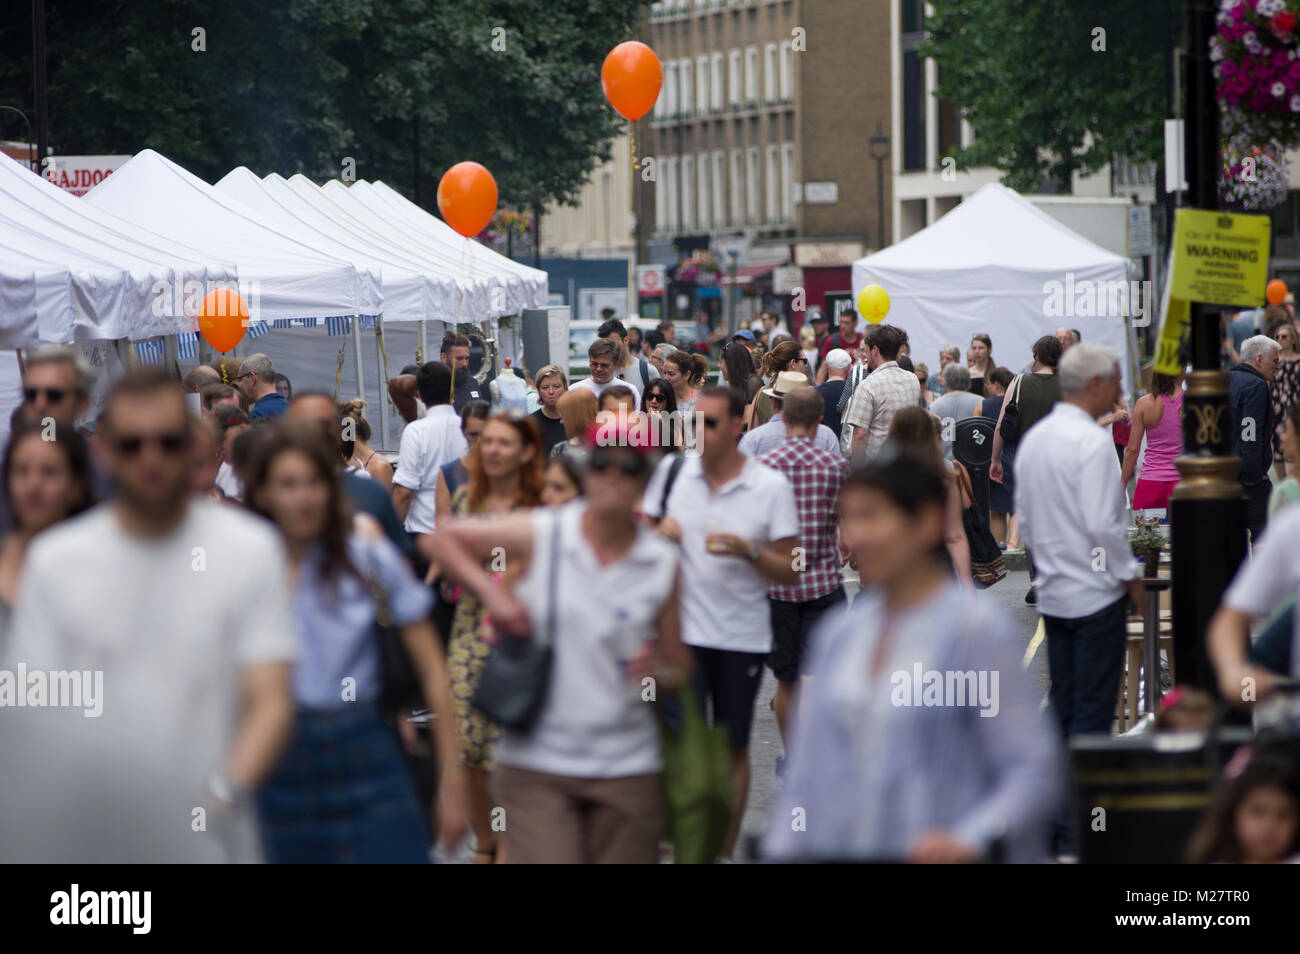 Crowd scene at the Marlyebone Summer Fayre Marlyebone Food Festival in London on a sunny day with yellow balloons - Stock Image